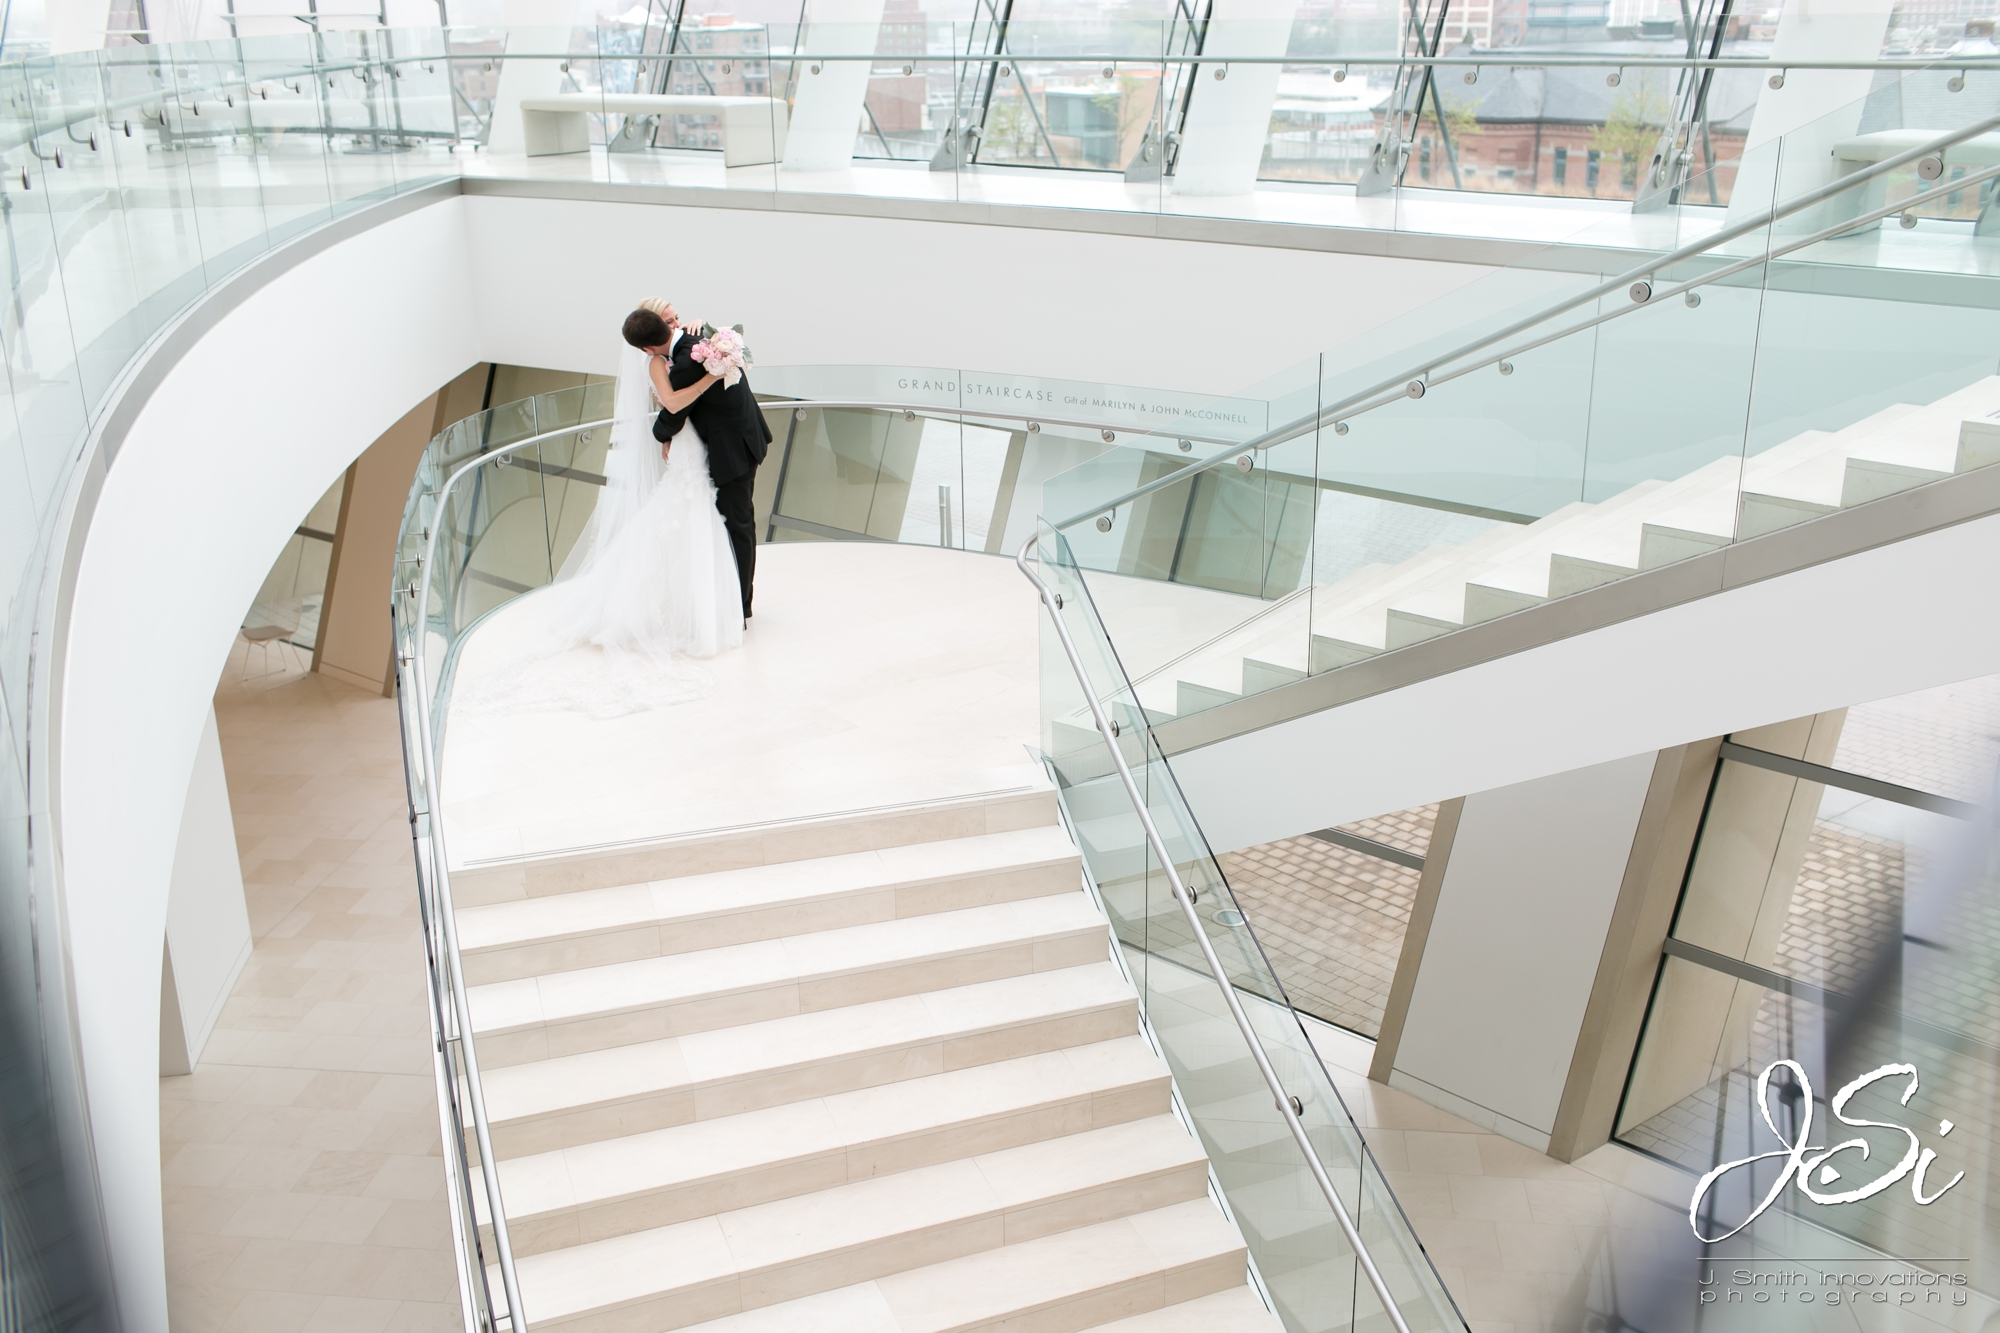 Kansas City Kauffman Center for the Performing Arts wedding first look husband wife photographer team photo